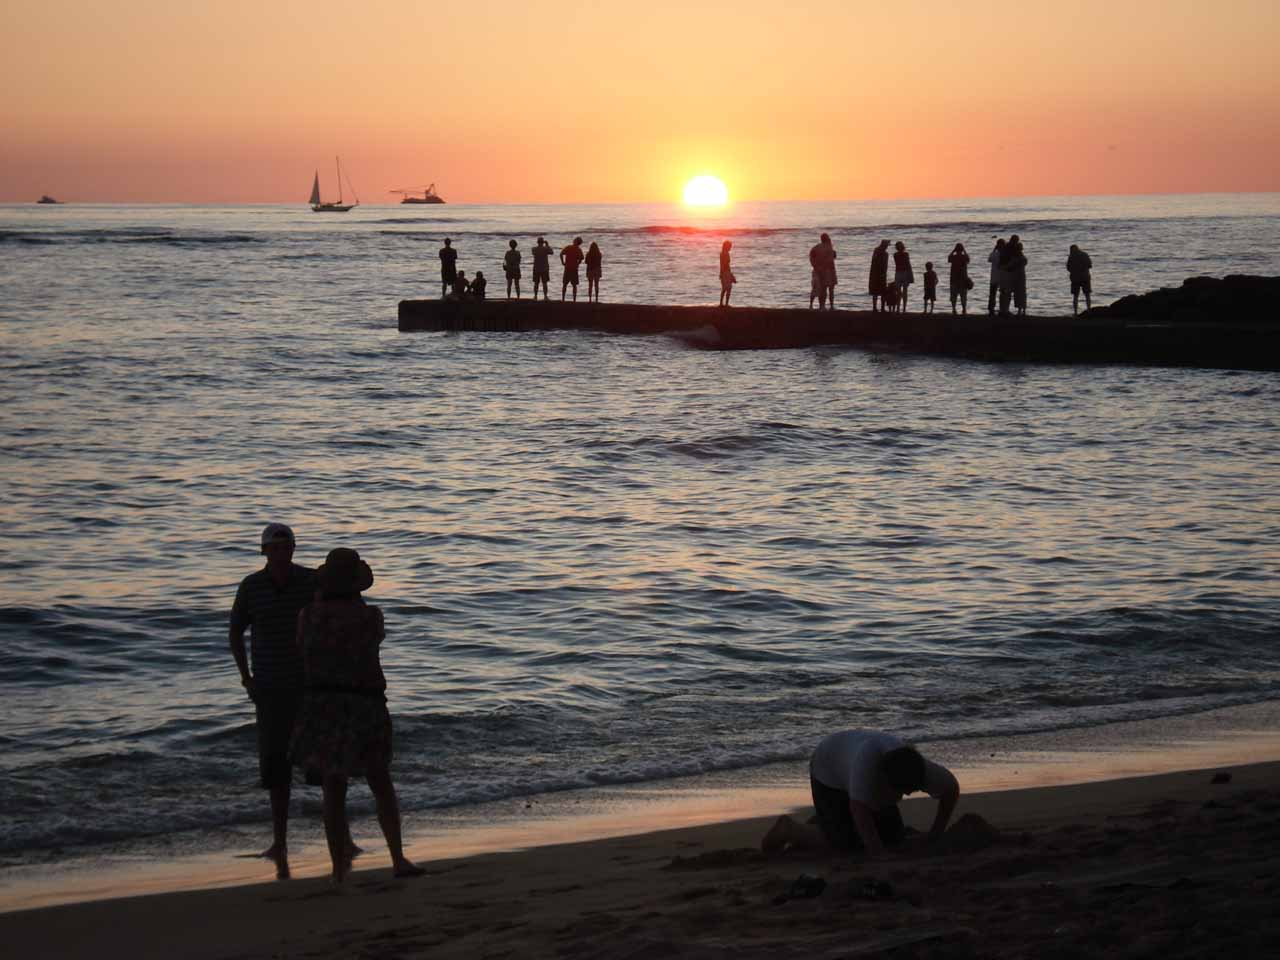 Waikiki is also a great place to catch sunsets